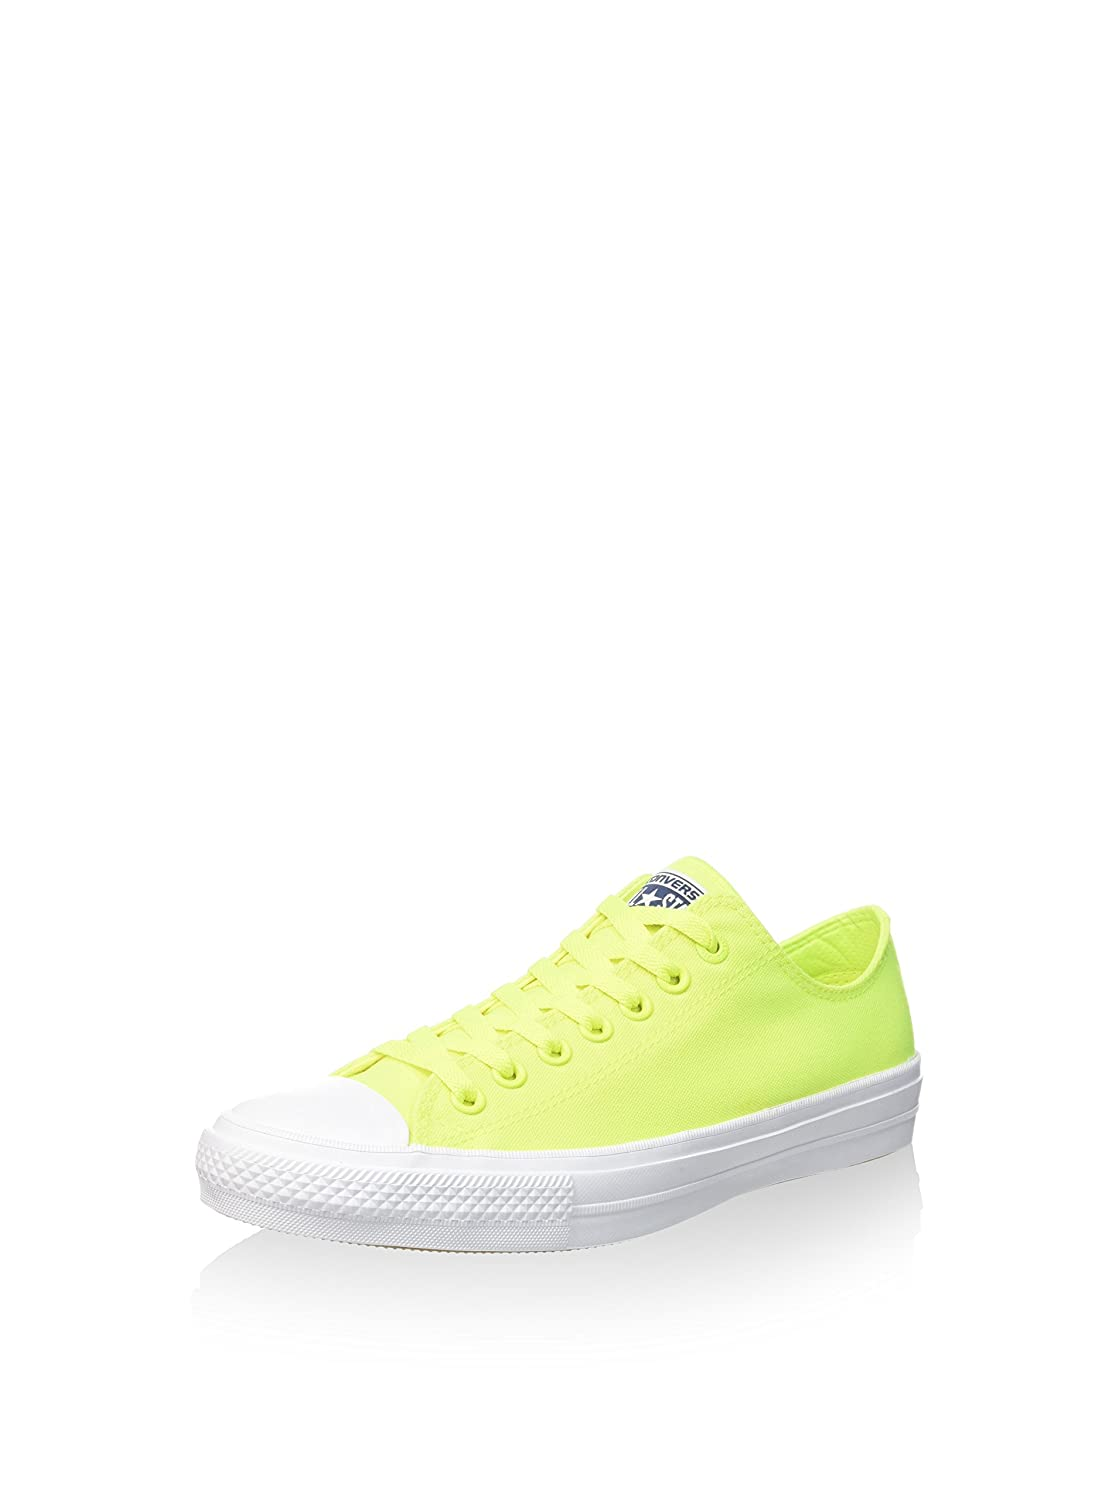 Converse Converse Converse Unisex-Erwachsene Ct As Ii Ox Neon Poly Low-top a424c9